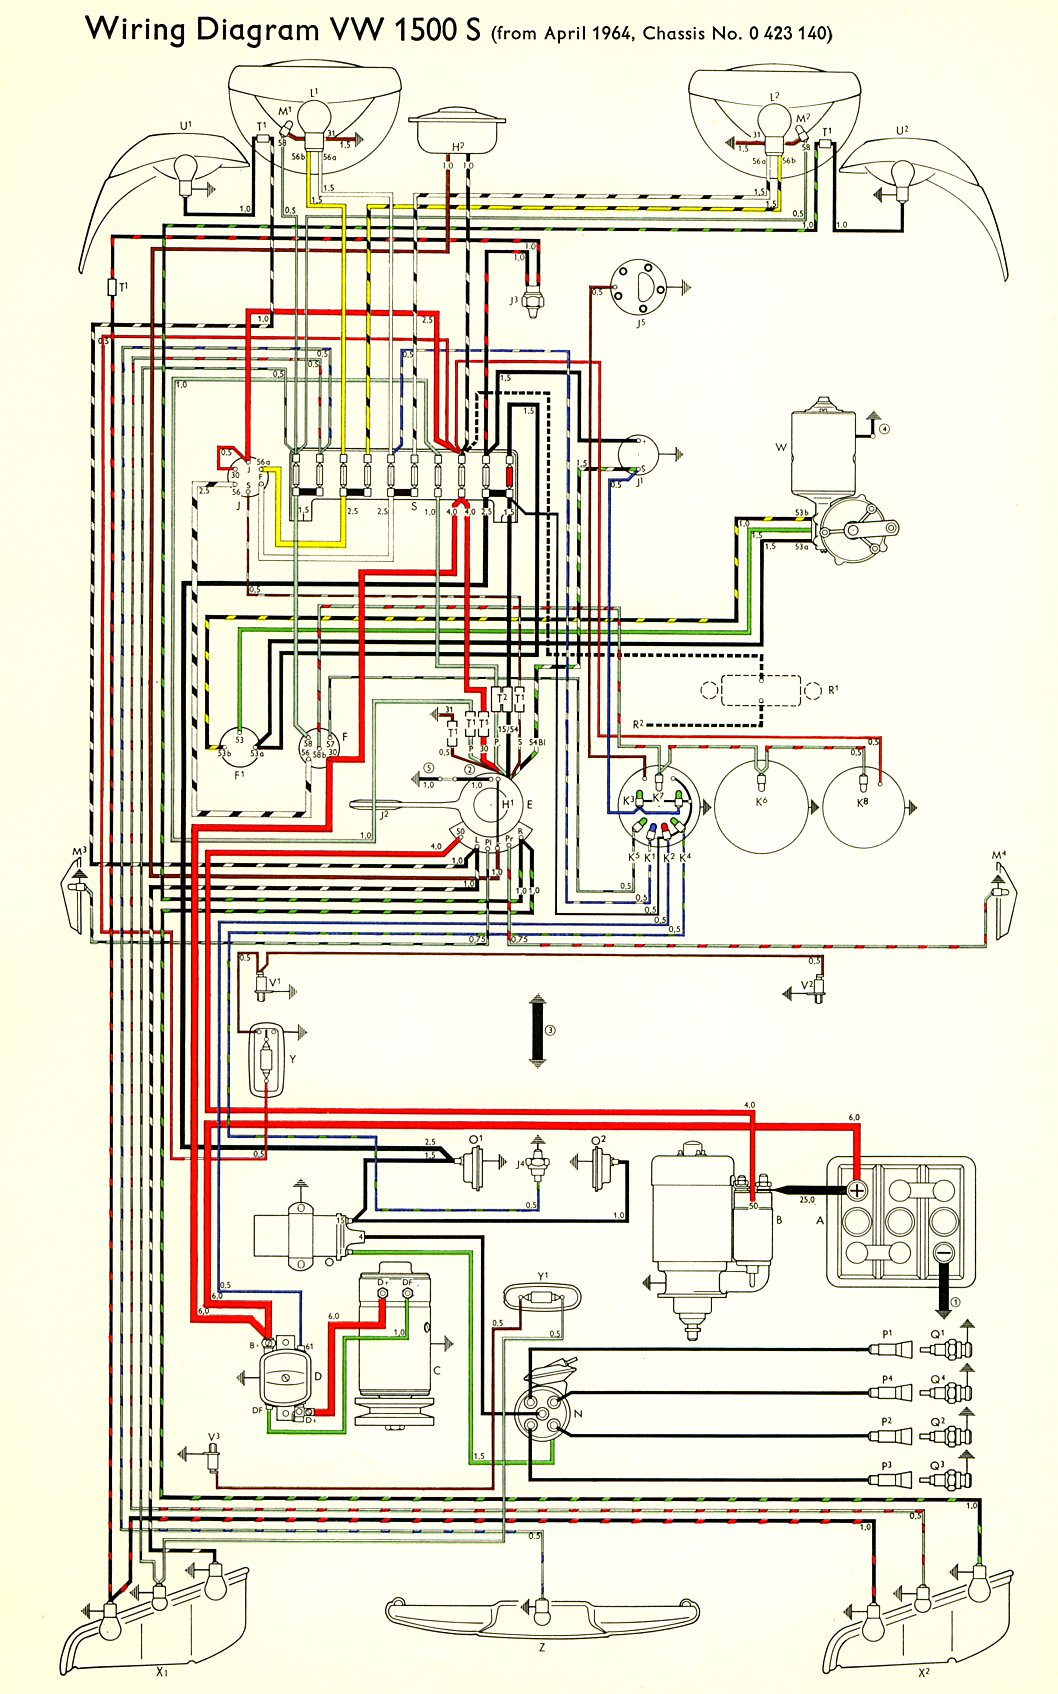 Type 3 Wiring Diagrams Light Bulb Wire Diagram